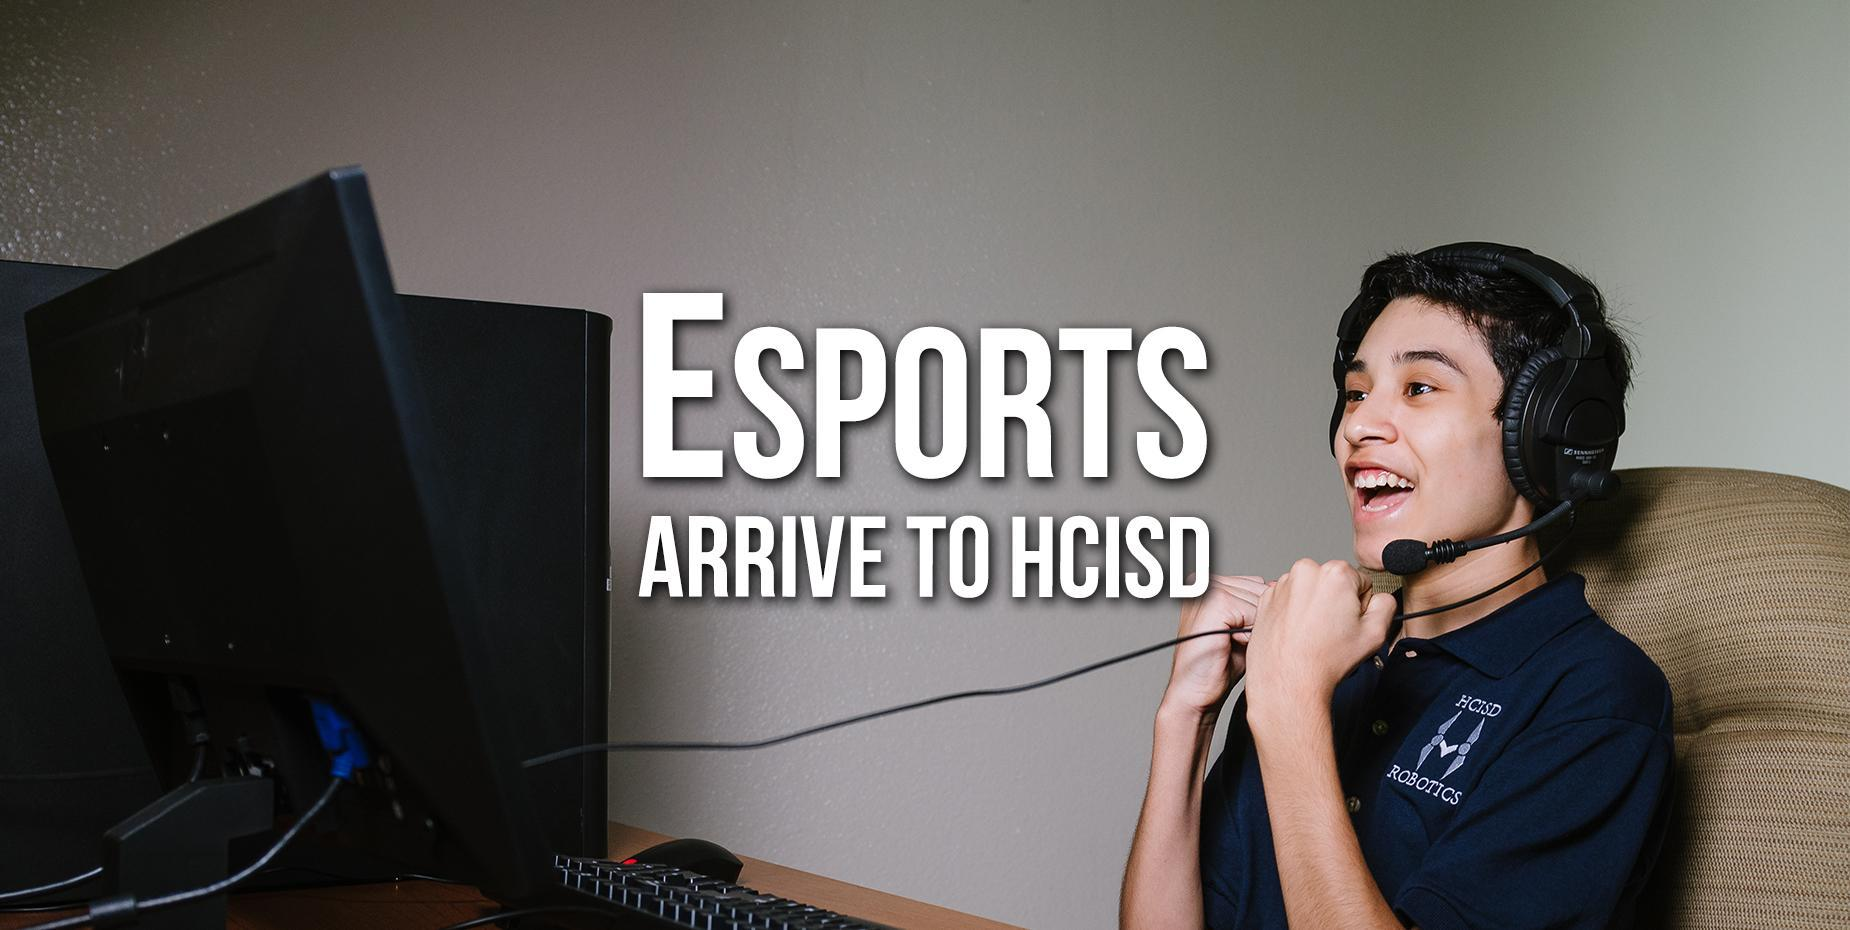 The excitement of esports arrives to HCISD